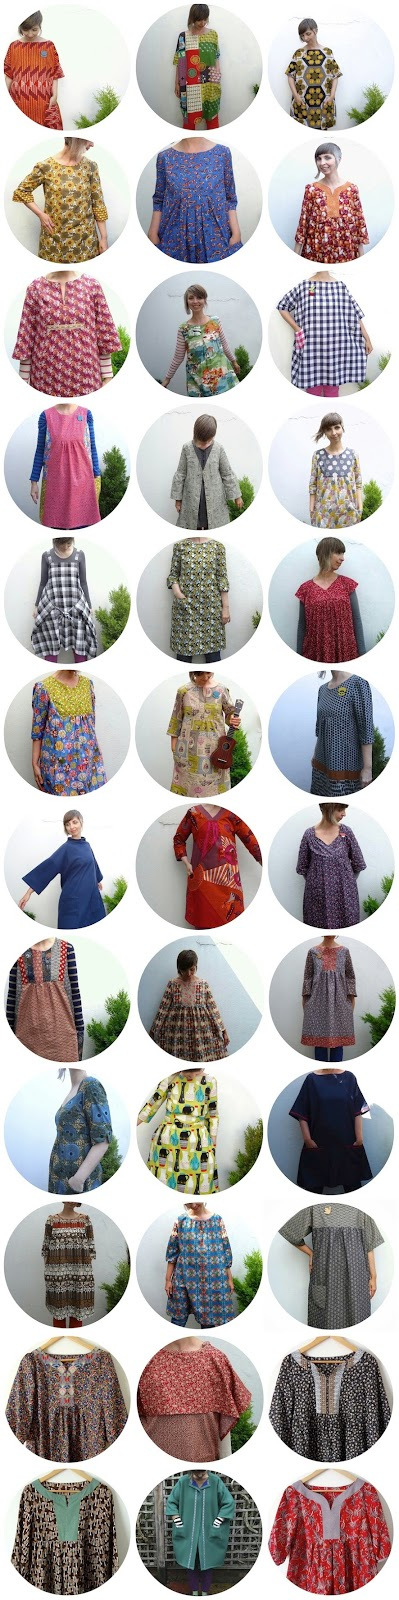 Handmade clothes by Ivy Arch 16 May 2013 - 16 May 2014